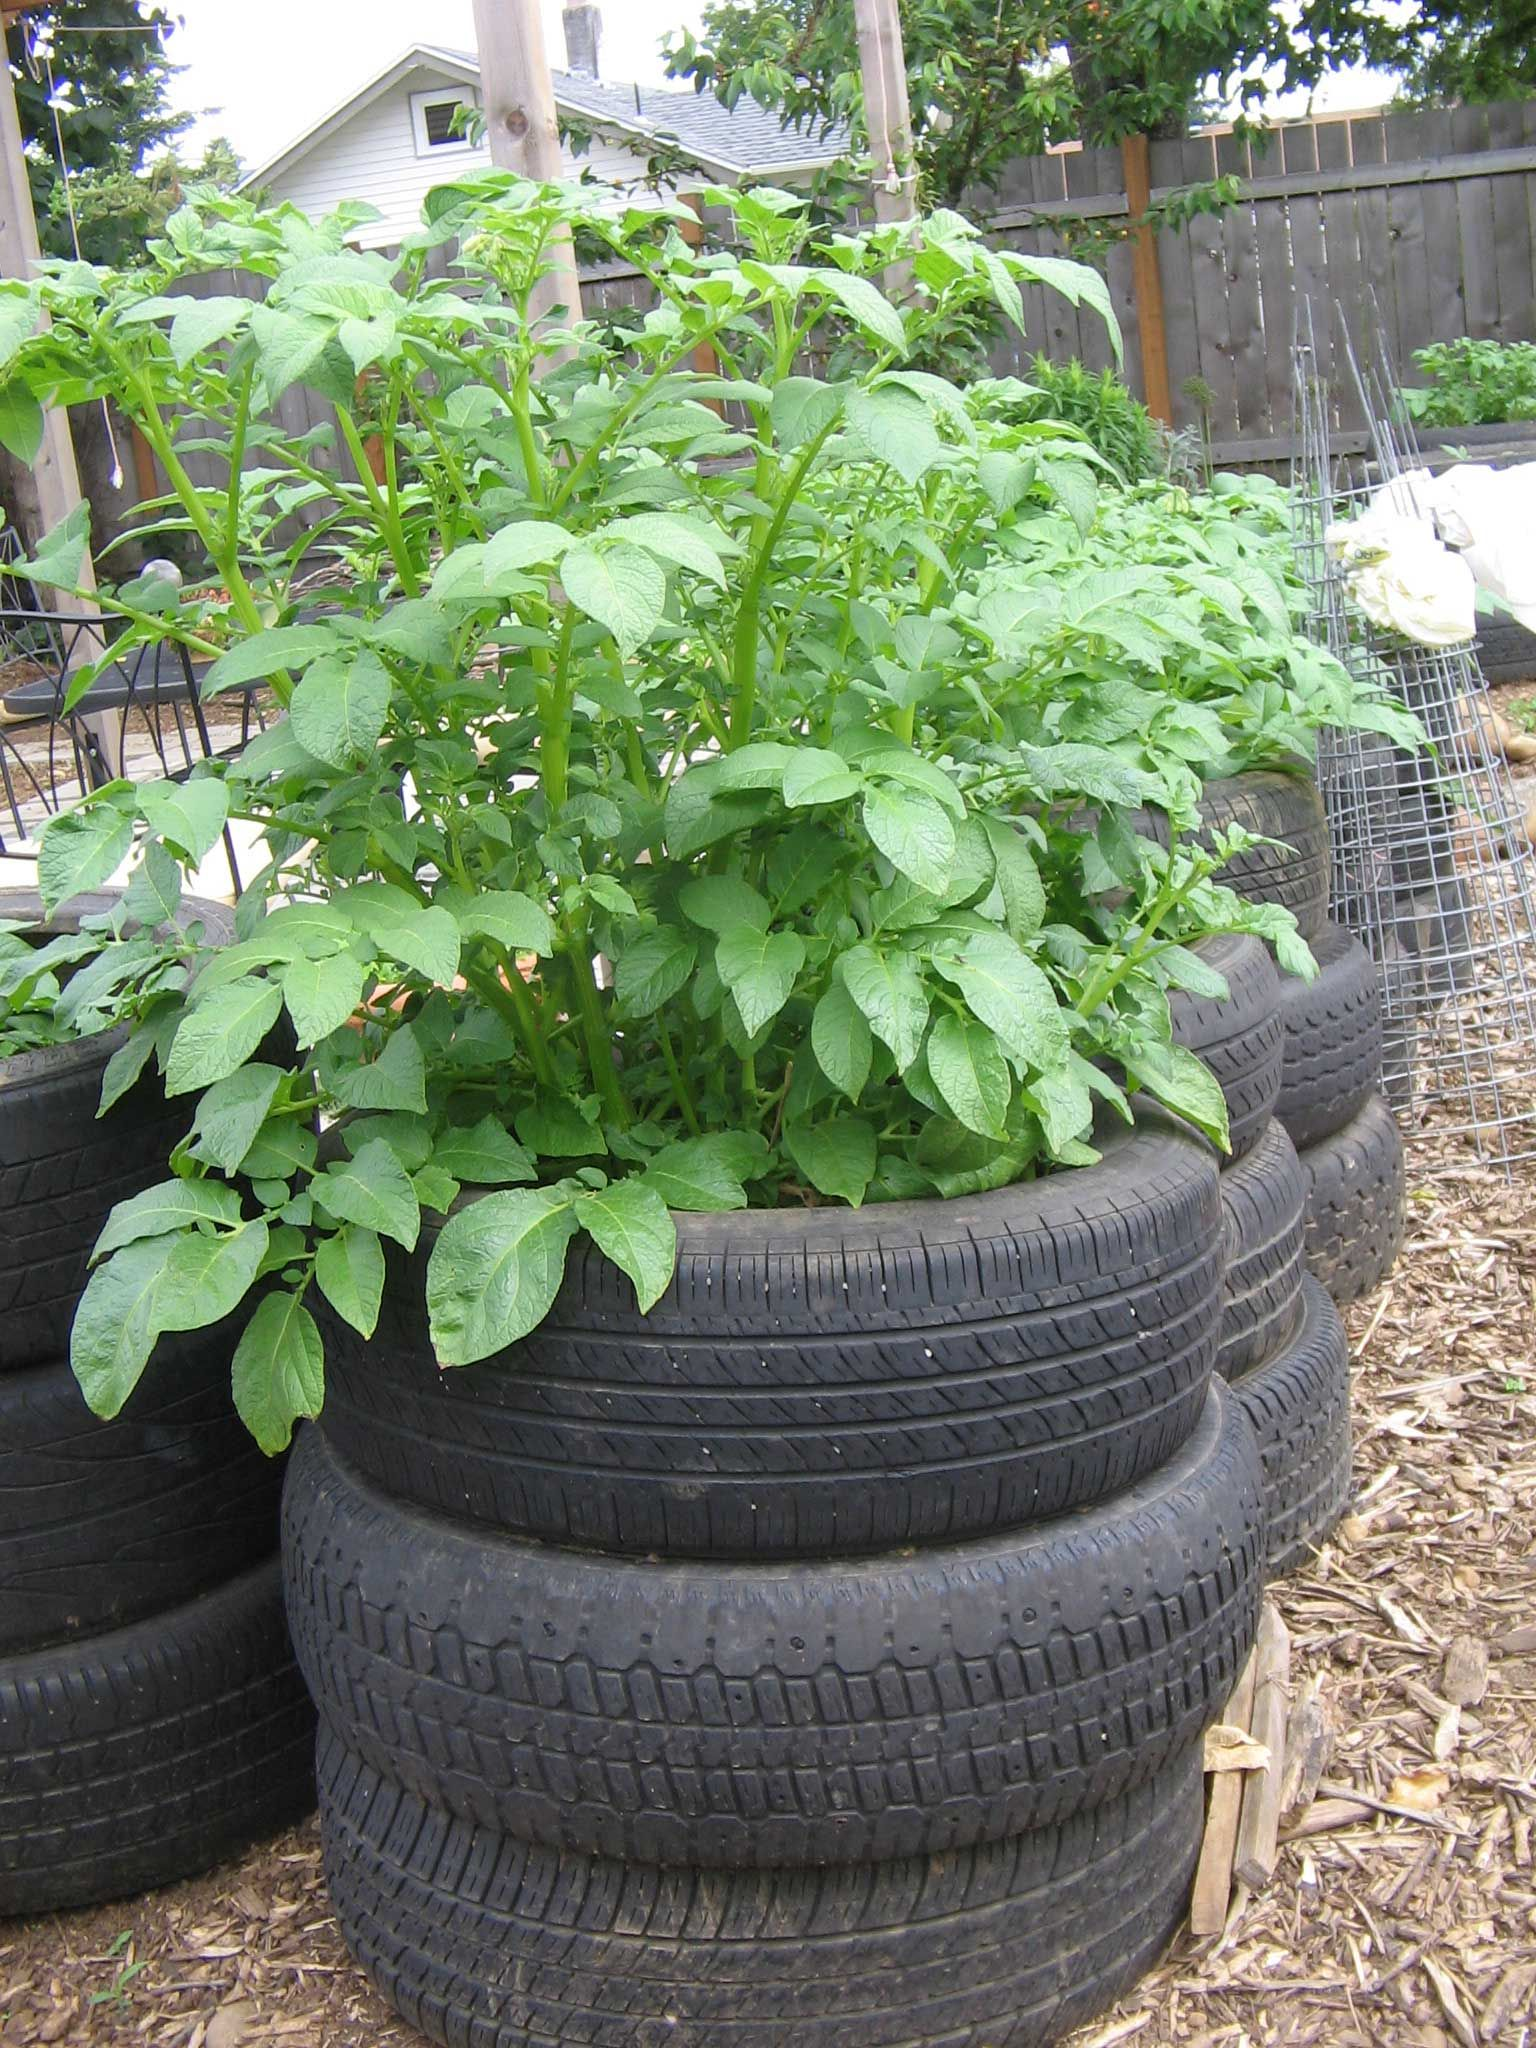 Grow Potatoes In Recycled Tires No Need To Dig Out The When It S Time Harvest